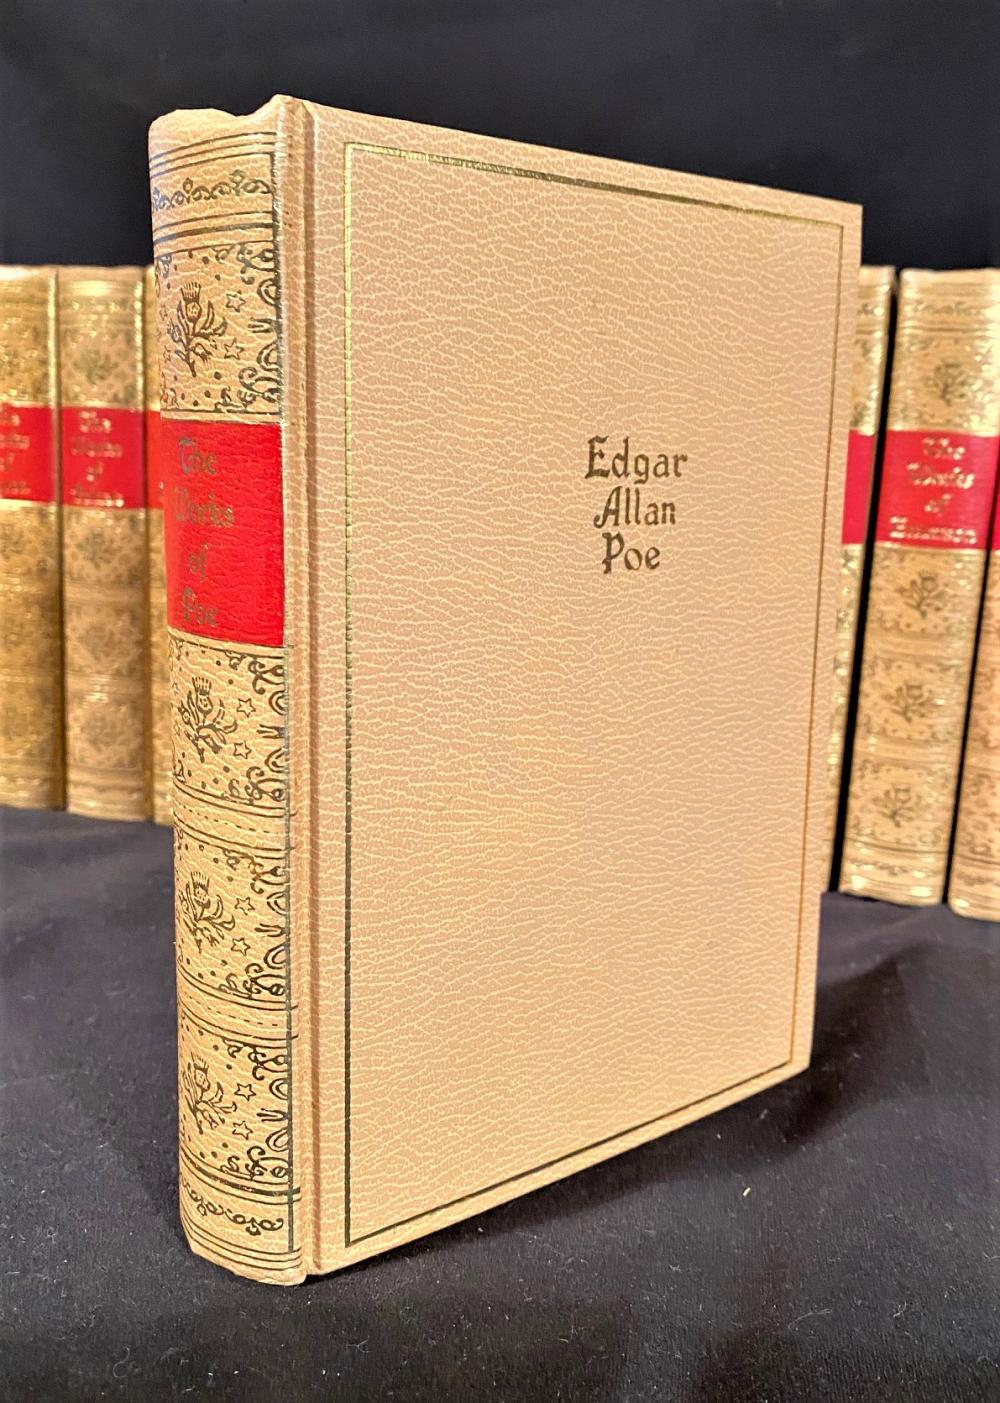 BLACKS READERS SERVICE CLASSICAL AUTHORS COLLECTION - 40 VOLUMES - LEATHERBOUND